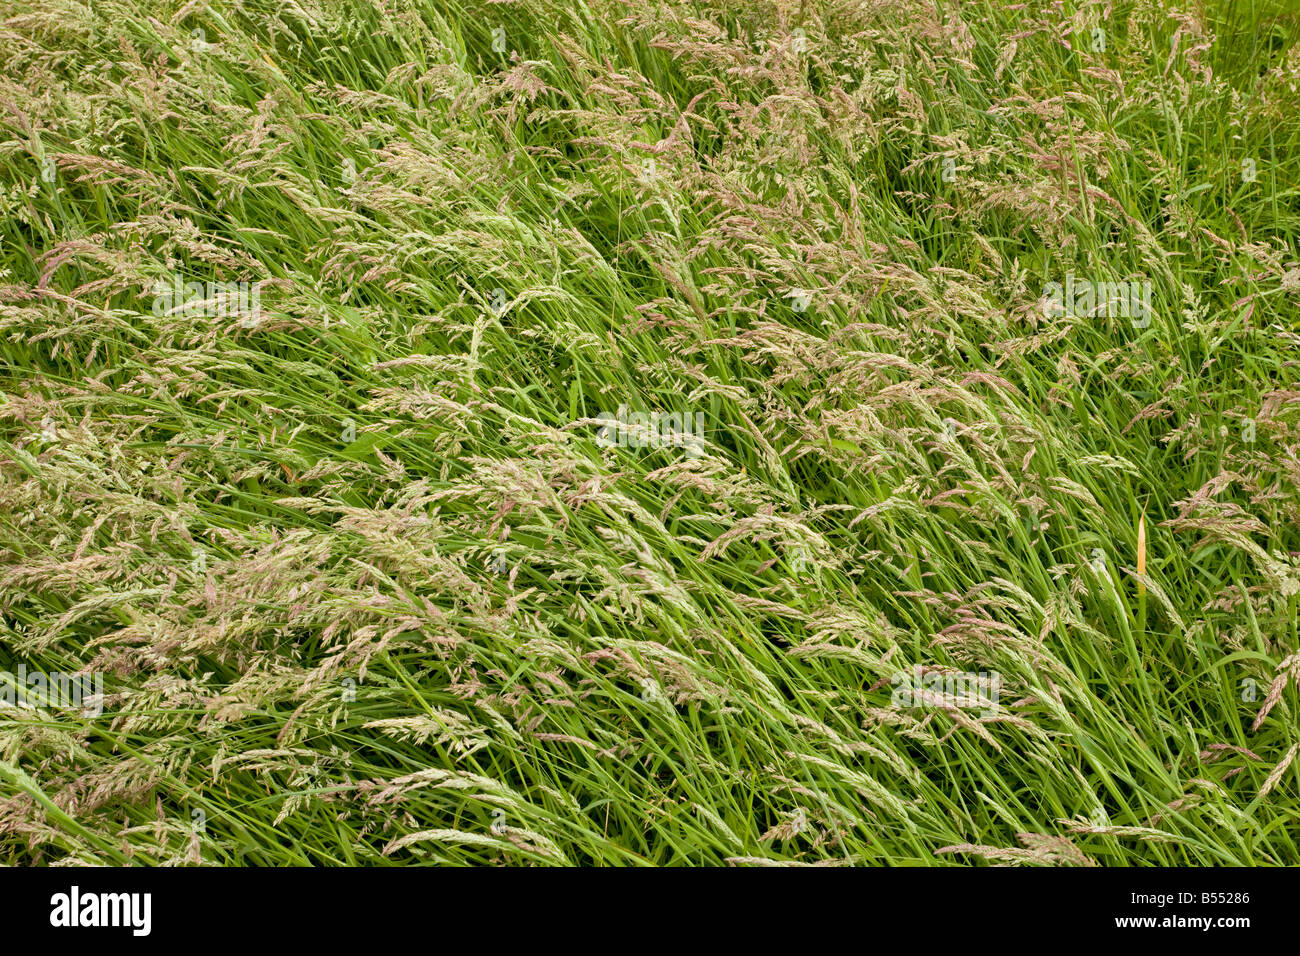 Sward of Yorkshire Fog grass (Holcus lanatus), full frame Stock Photo